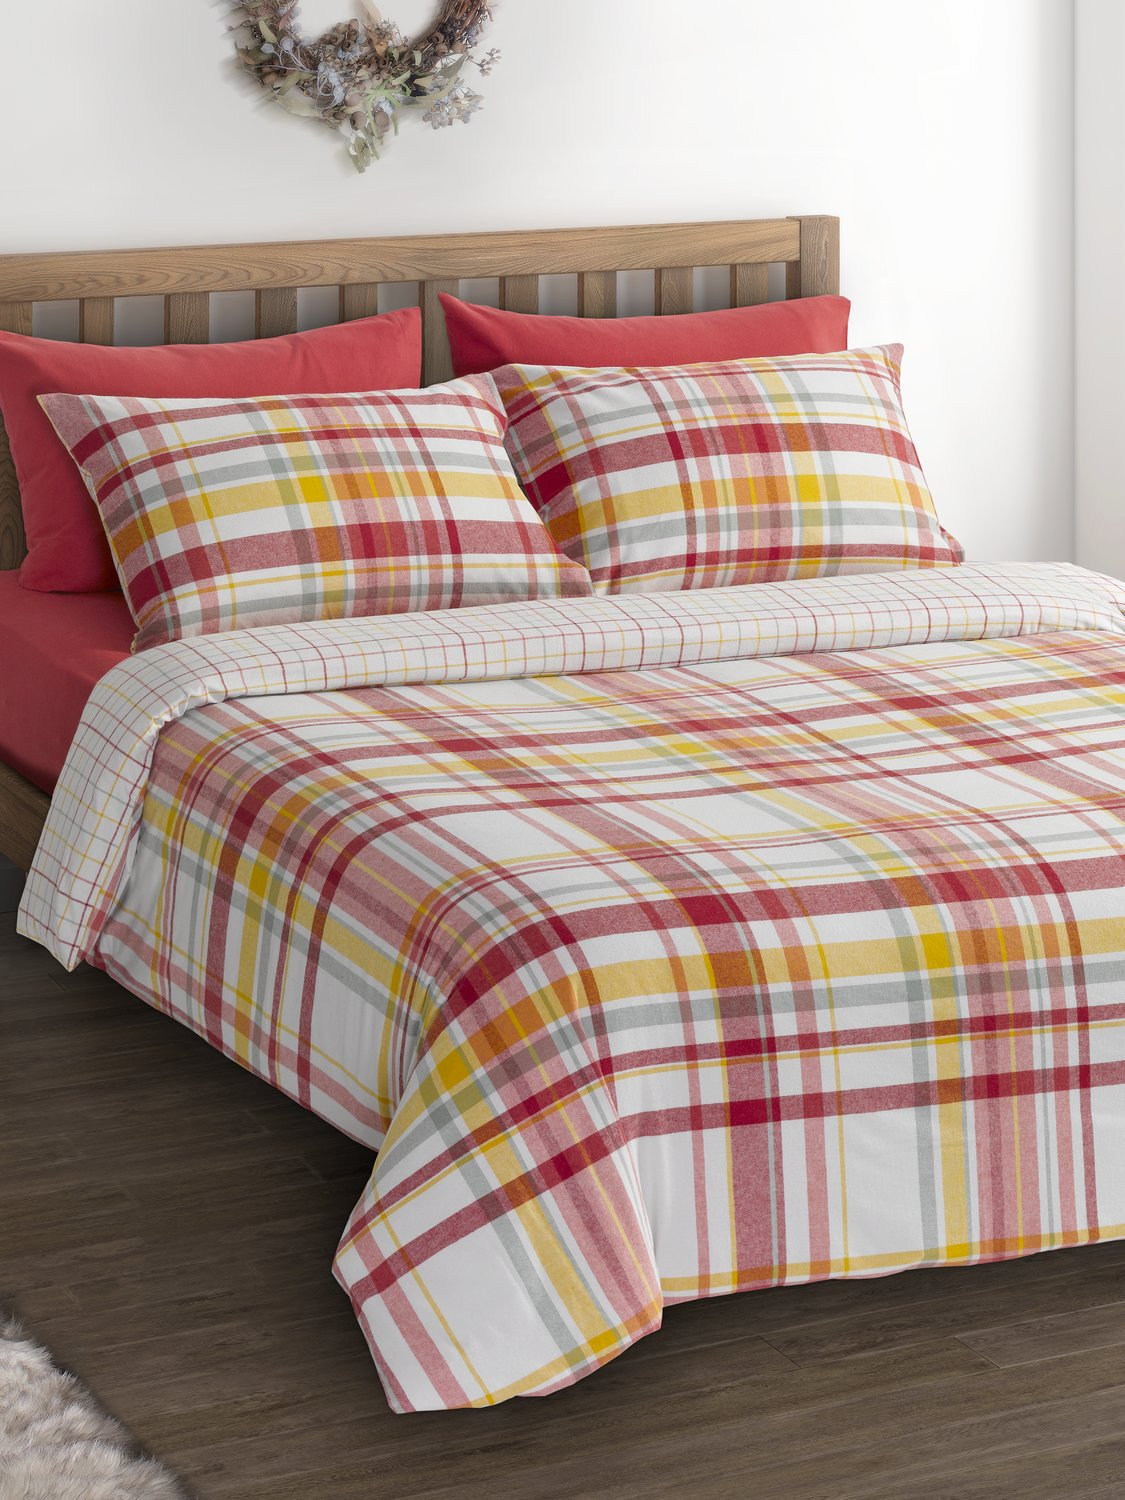 Image of Home 100% brushed cotton autumn check pattern duvet cover pillow set - Terracotta